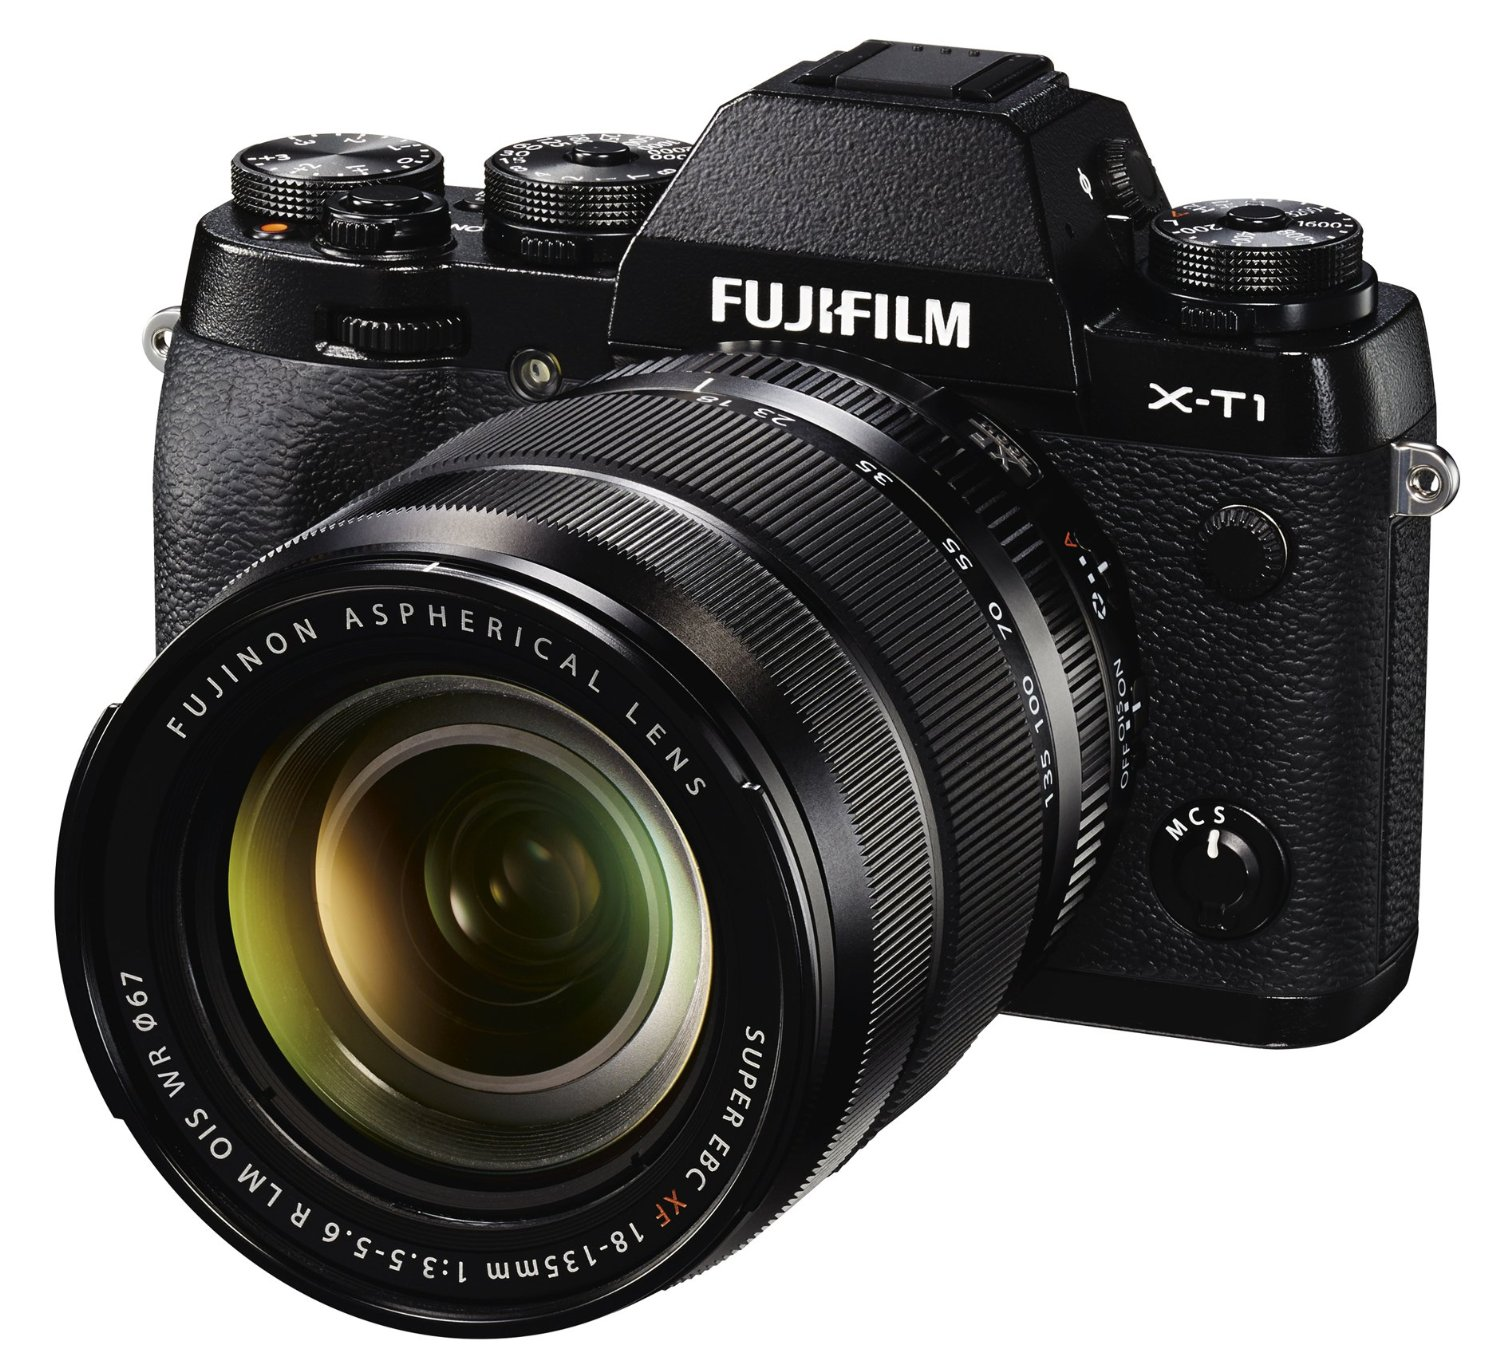 Fujifilm X-T1 with 18-135mm lens